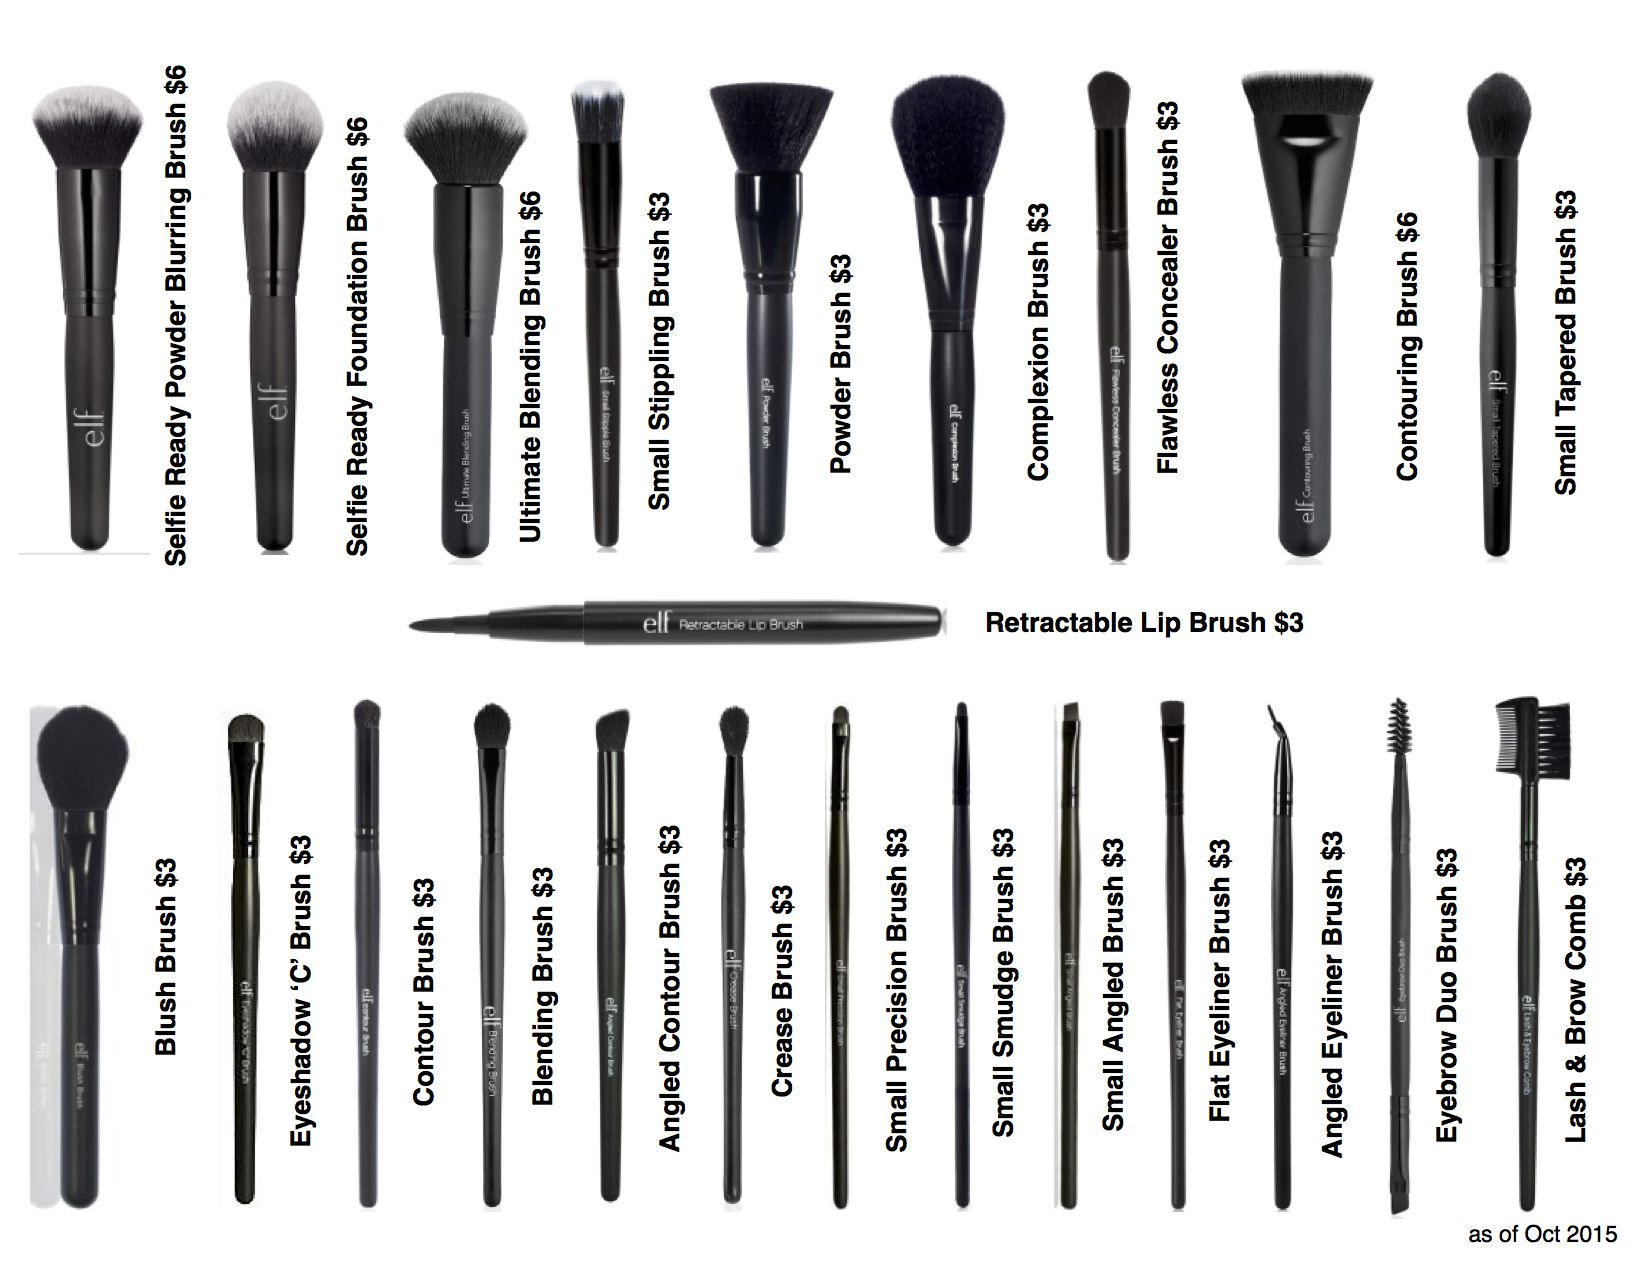 Elf Brushes I Just Bought The Ultimate Blending Brush Yesterday At Walmart  And Omg!